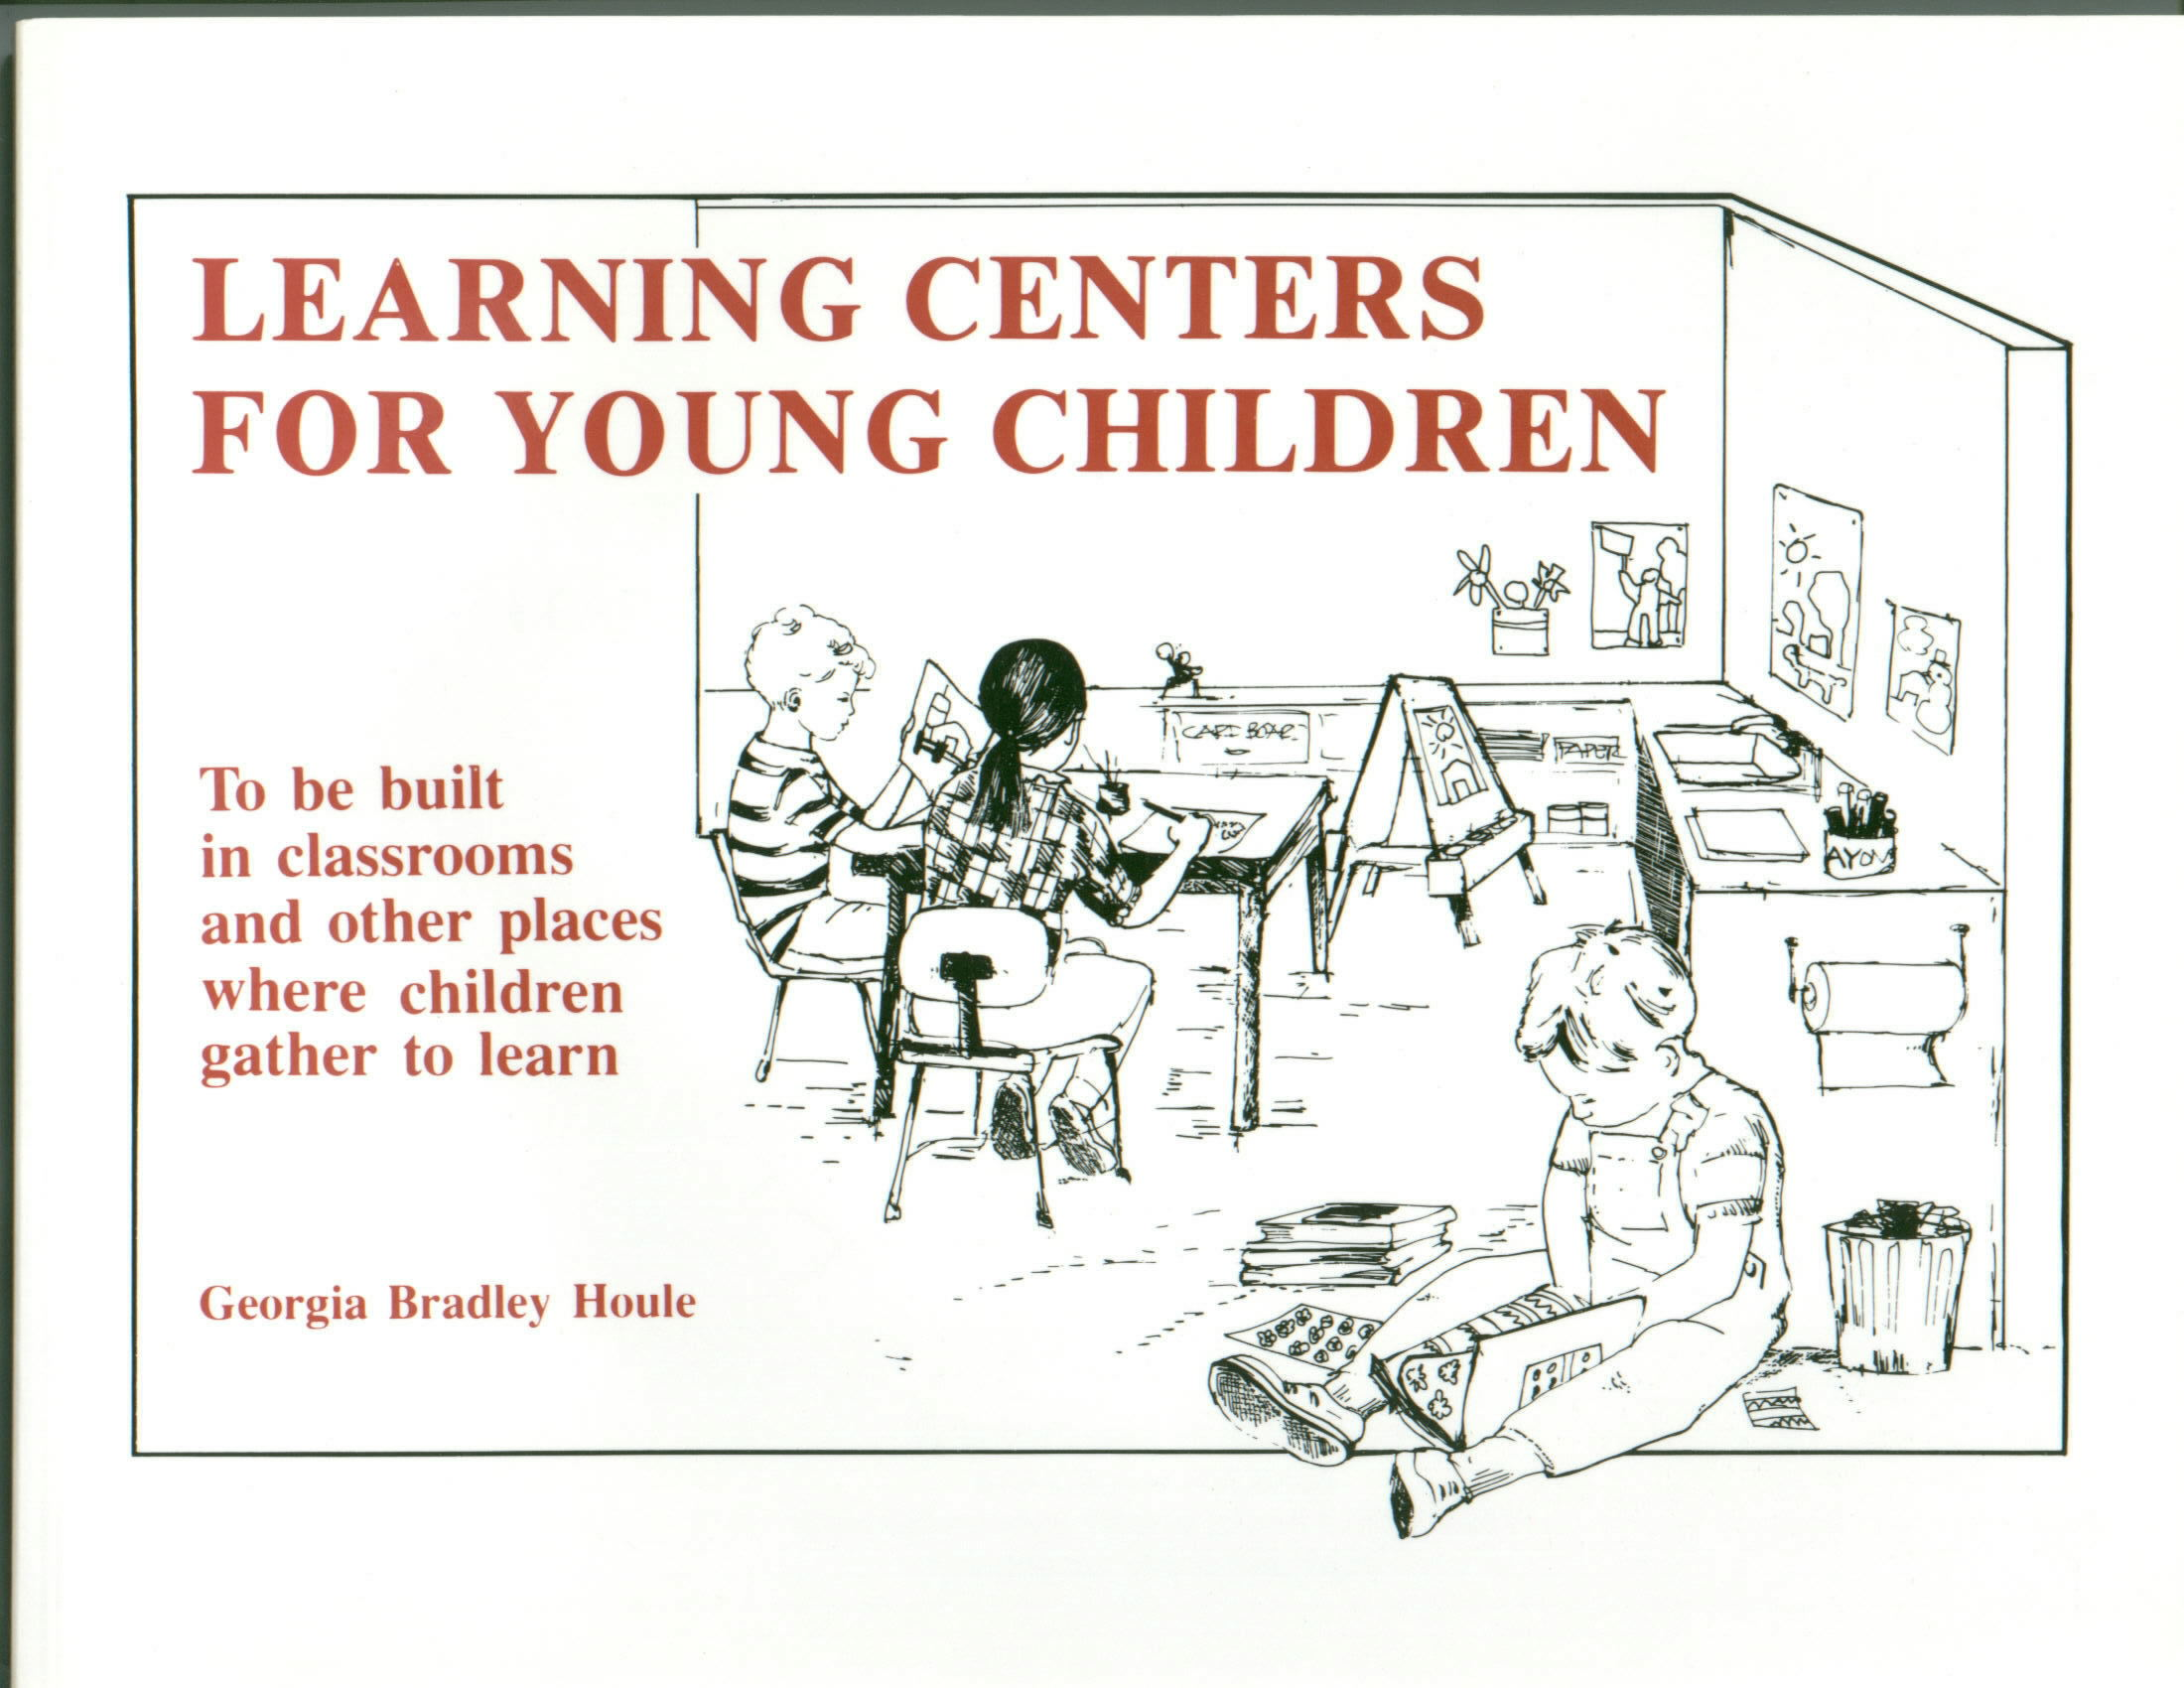 learningcenters.jpg